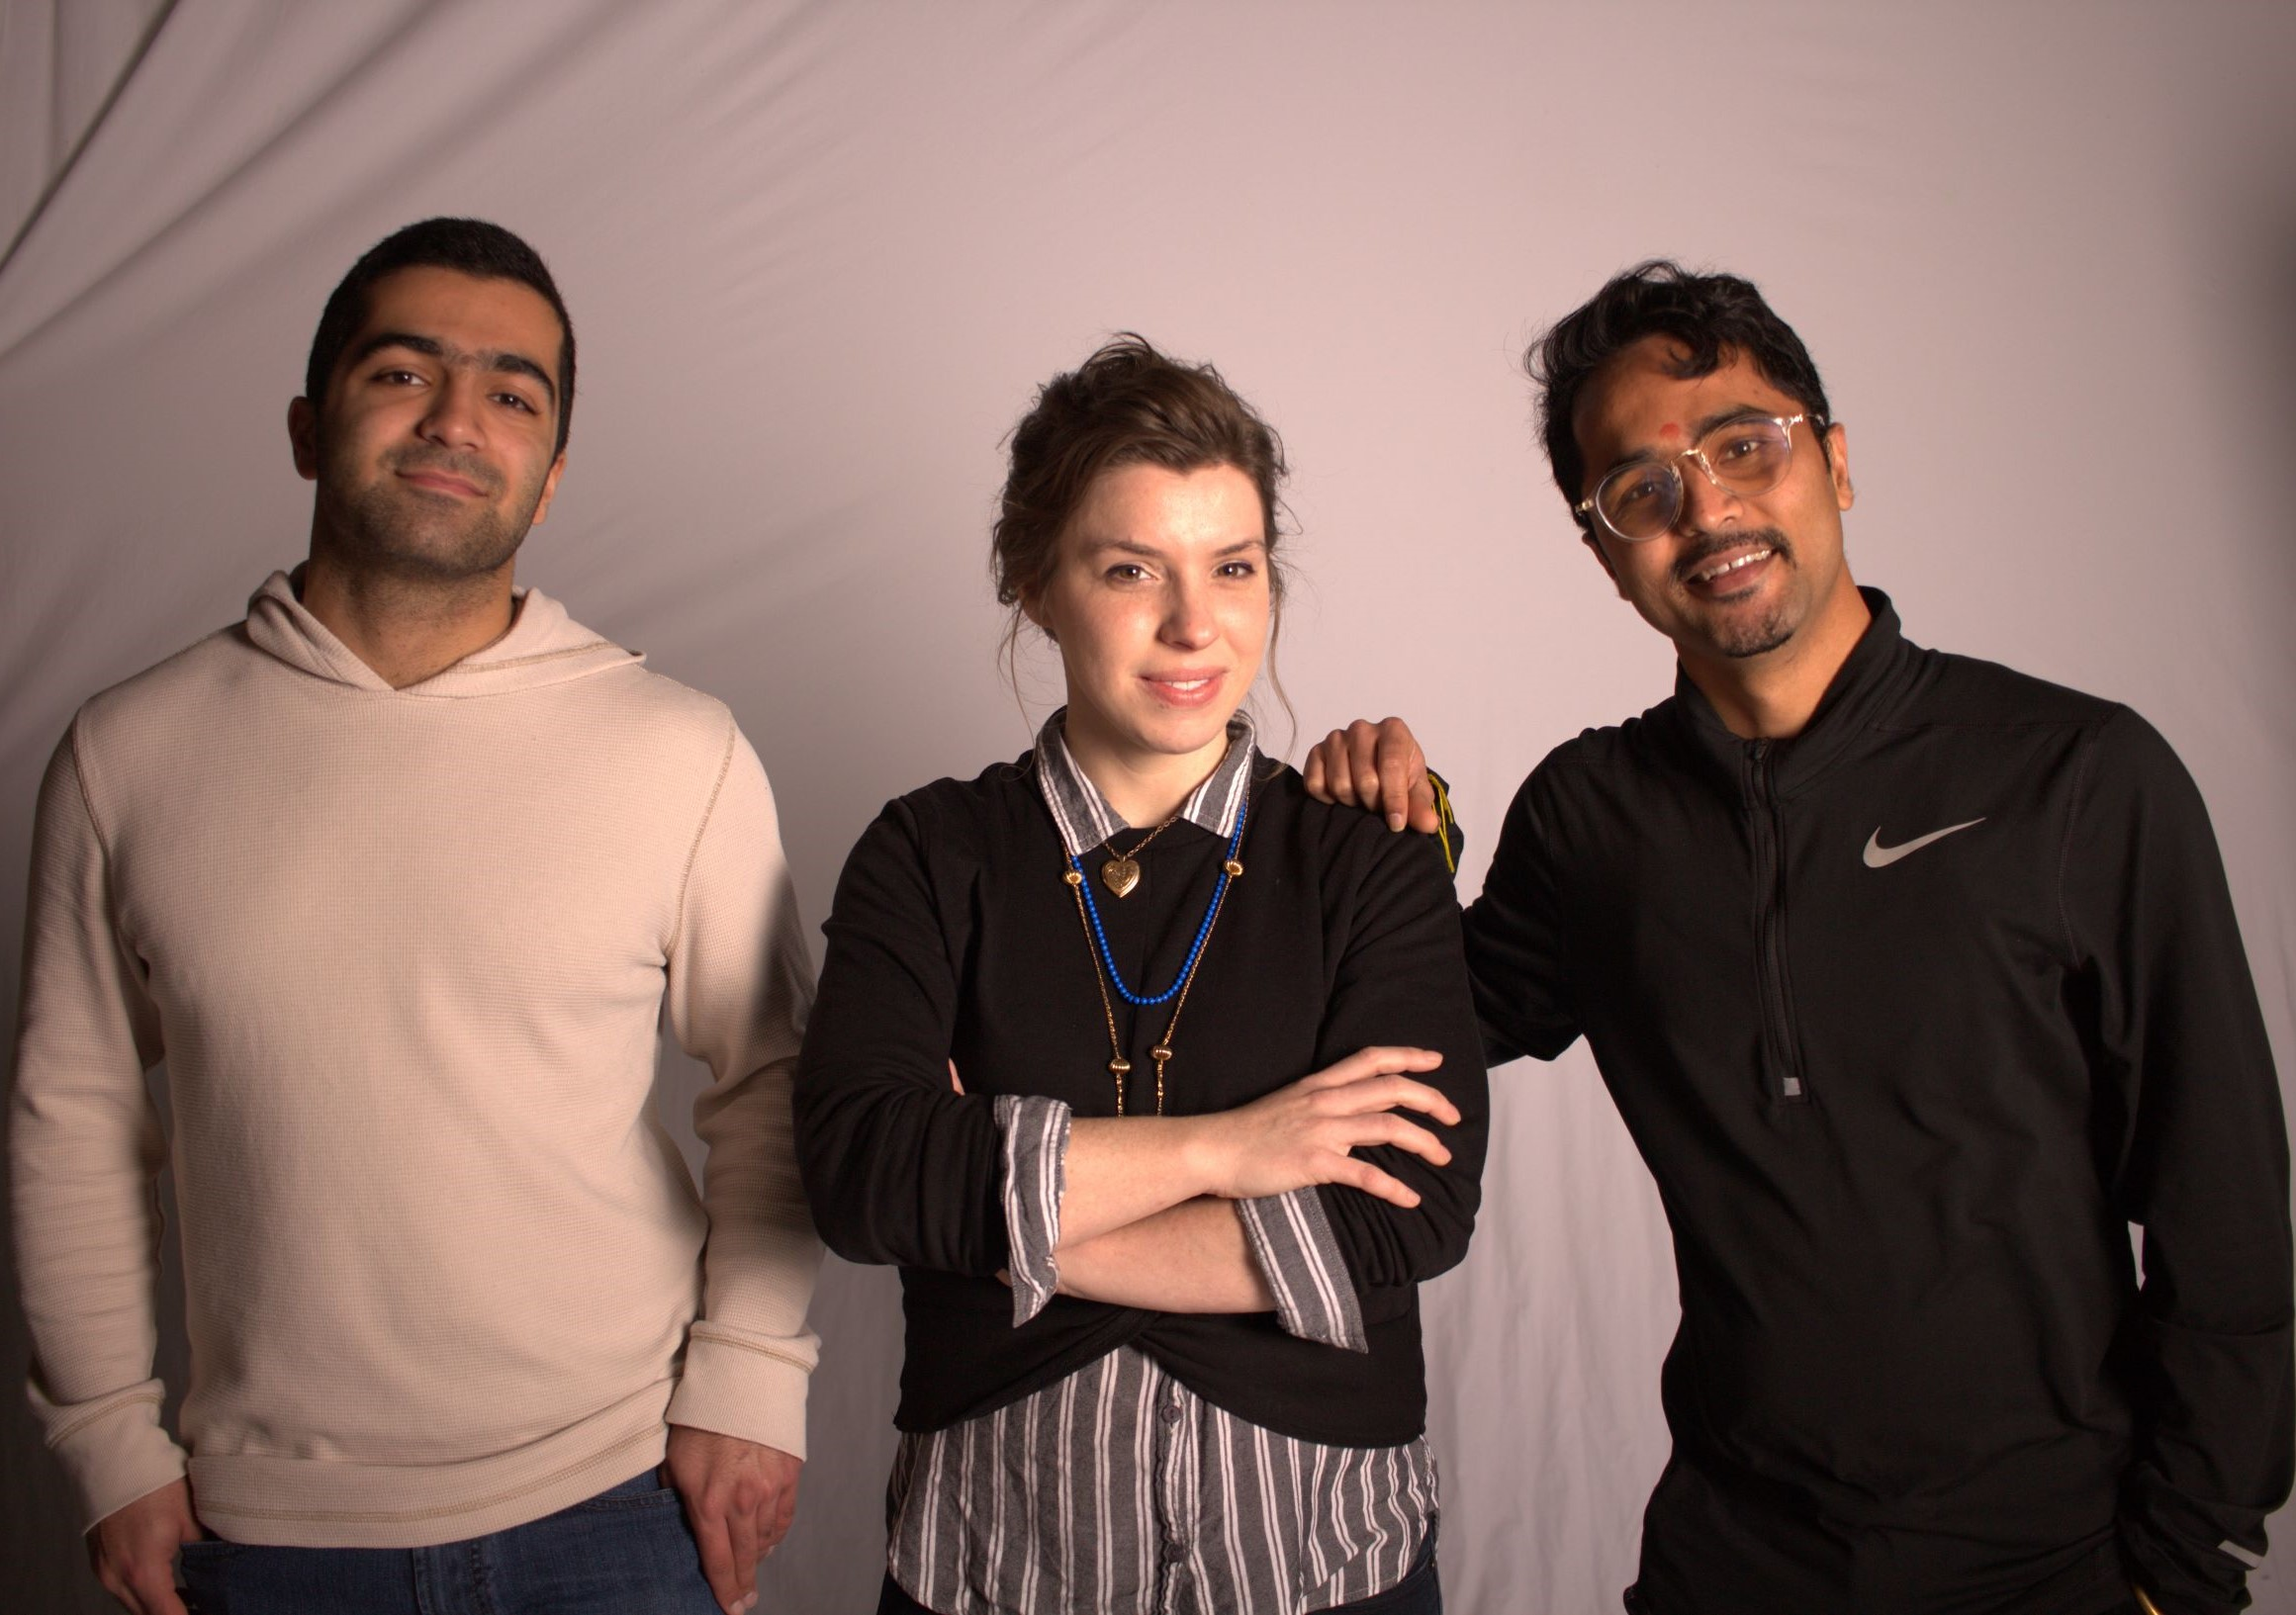 HazAdapt's founding team. From left to right: COO Omeed, CEO Ginny, and CTO Uday.